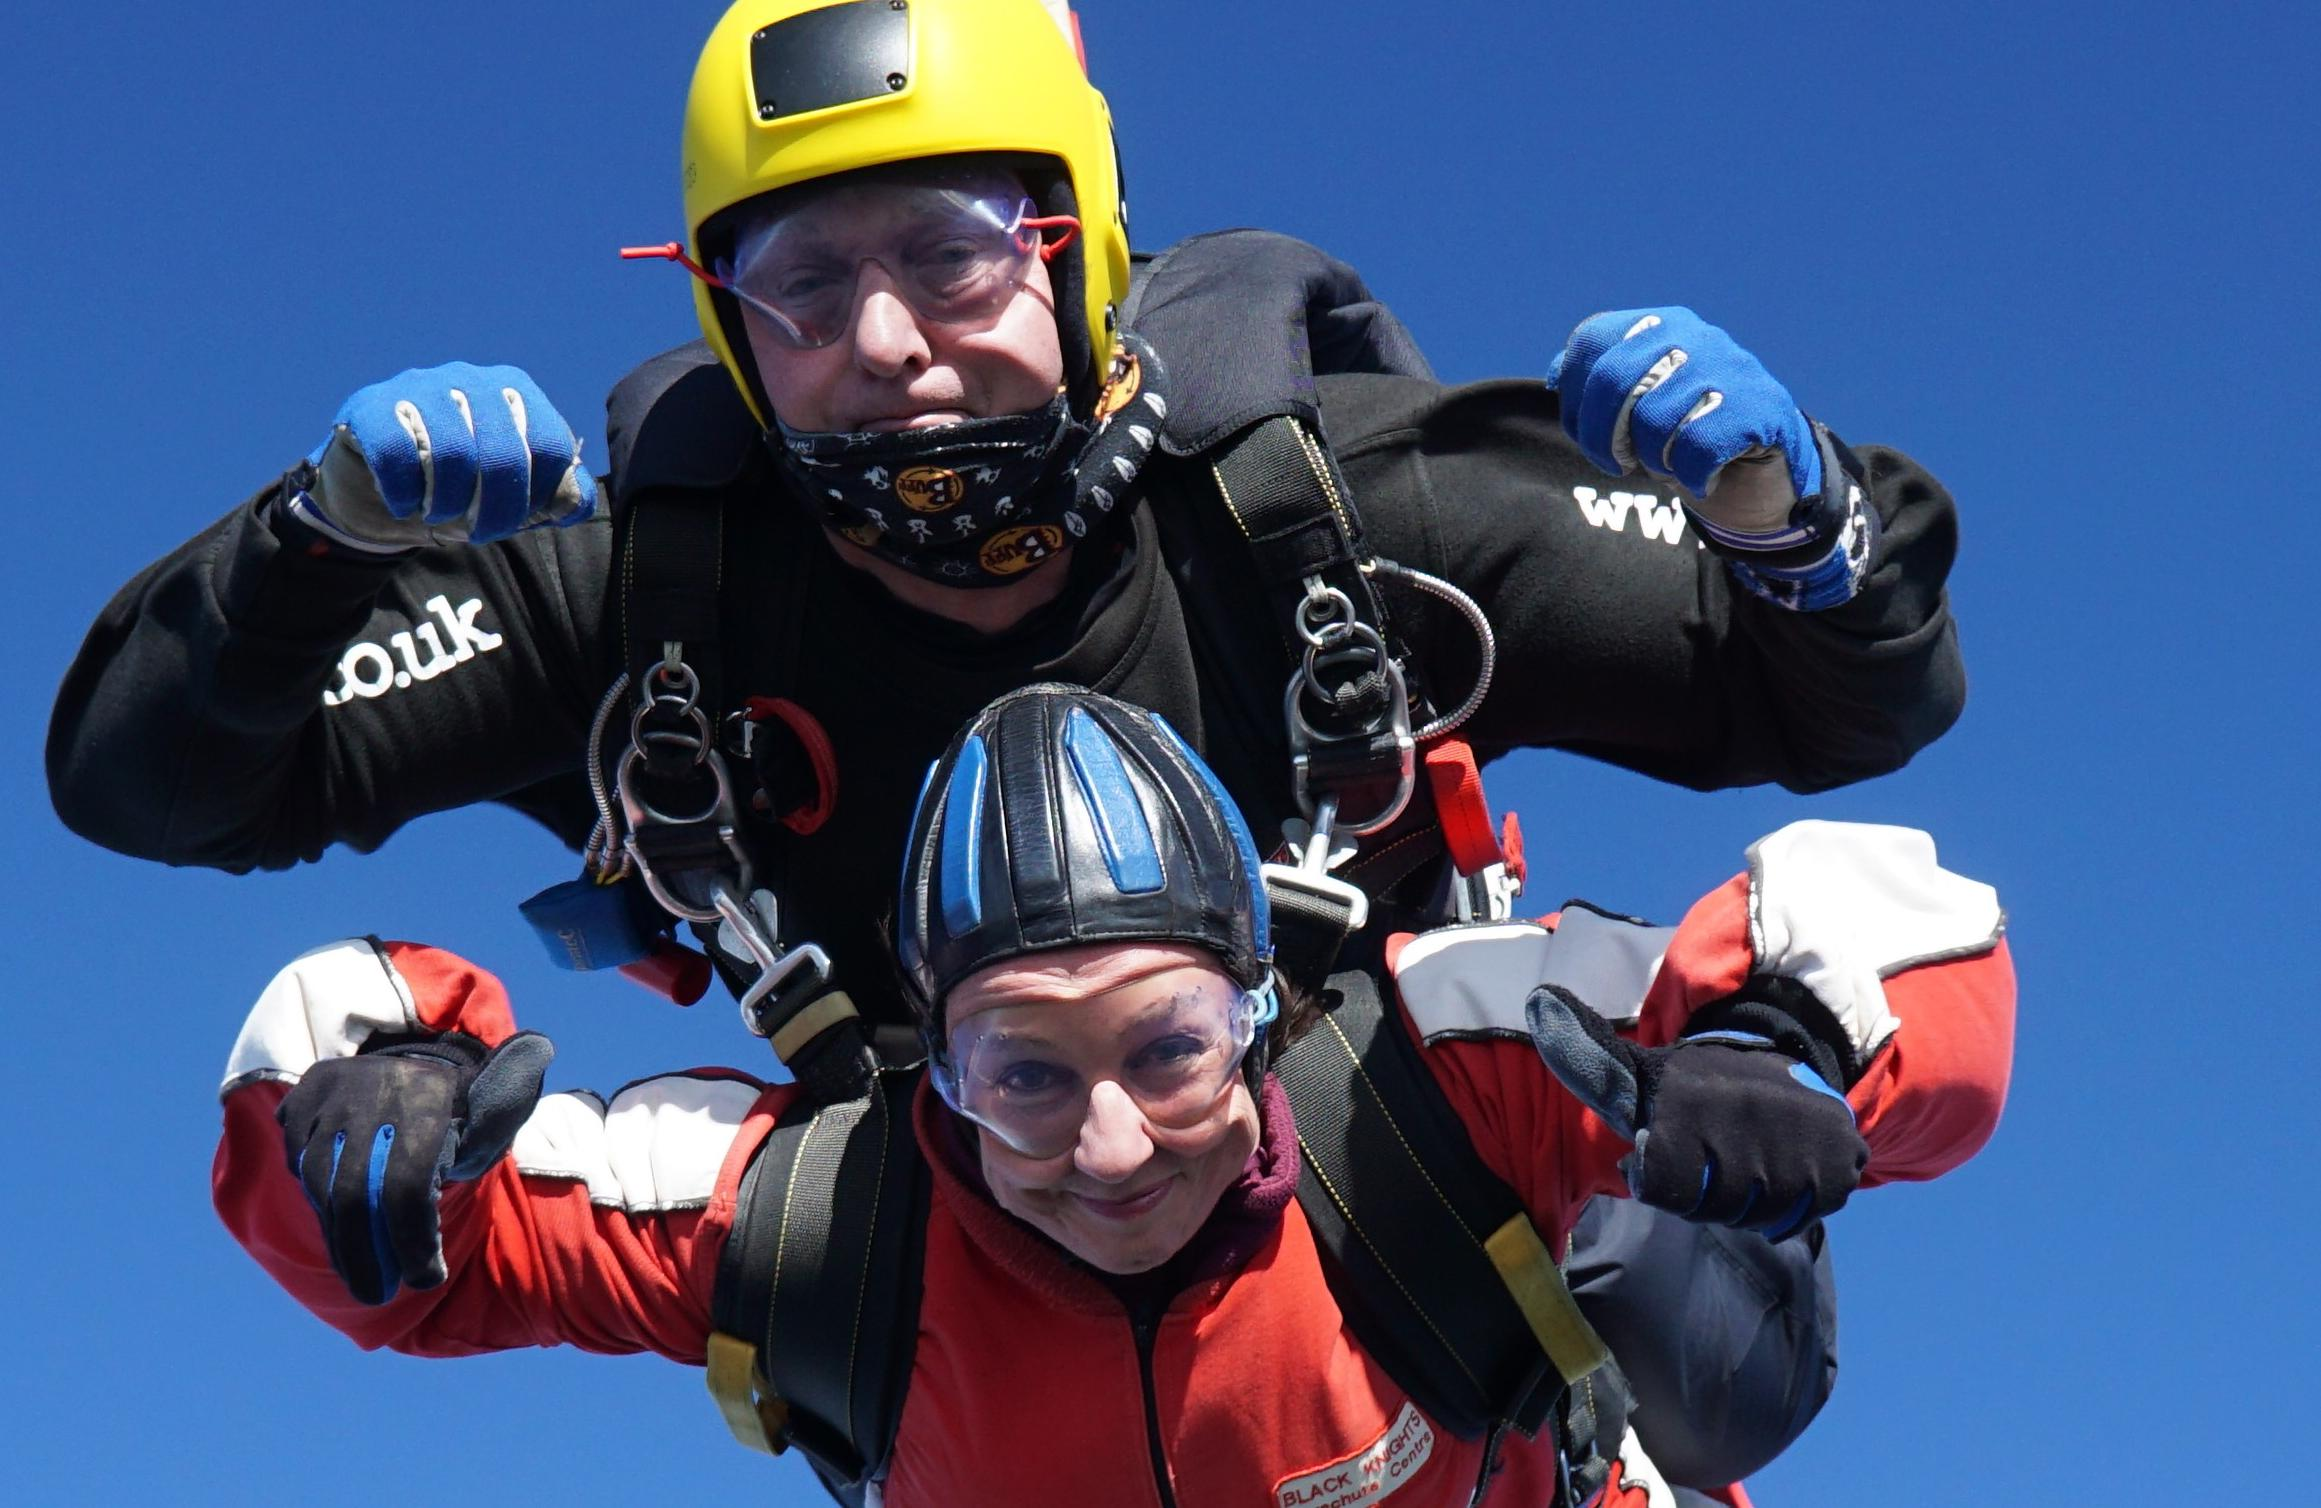 Skydive Completed